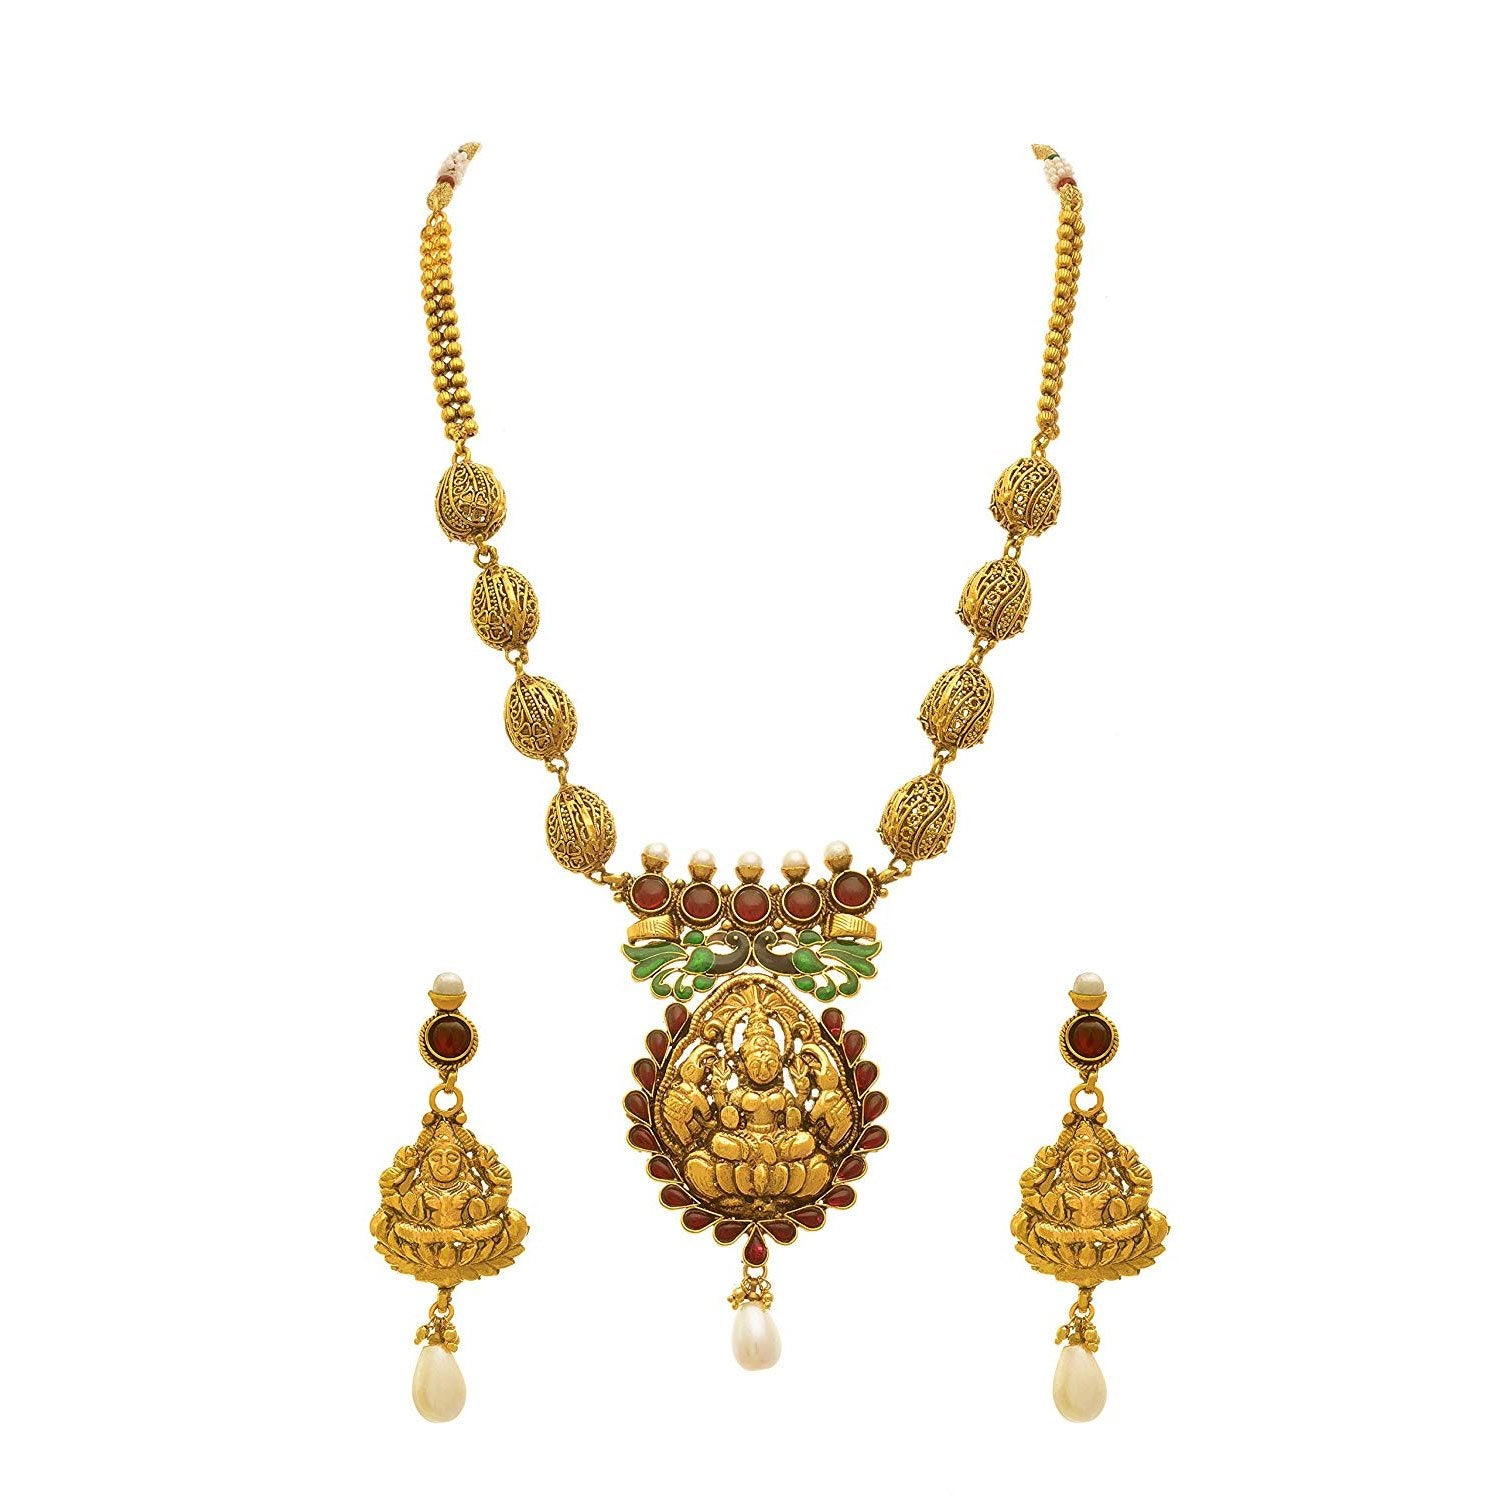 JFL- Magnificant Mahalaxmi One Gram Gold Plated Pink Stones & Pearls Peacock Designer Necklace Set for Women.